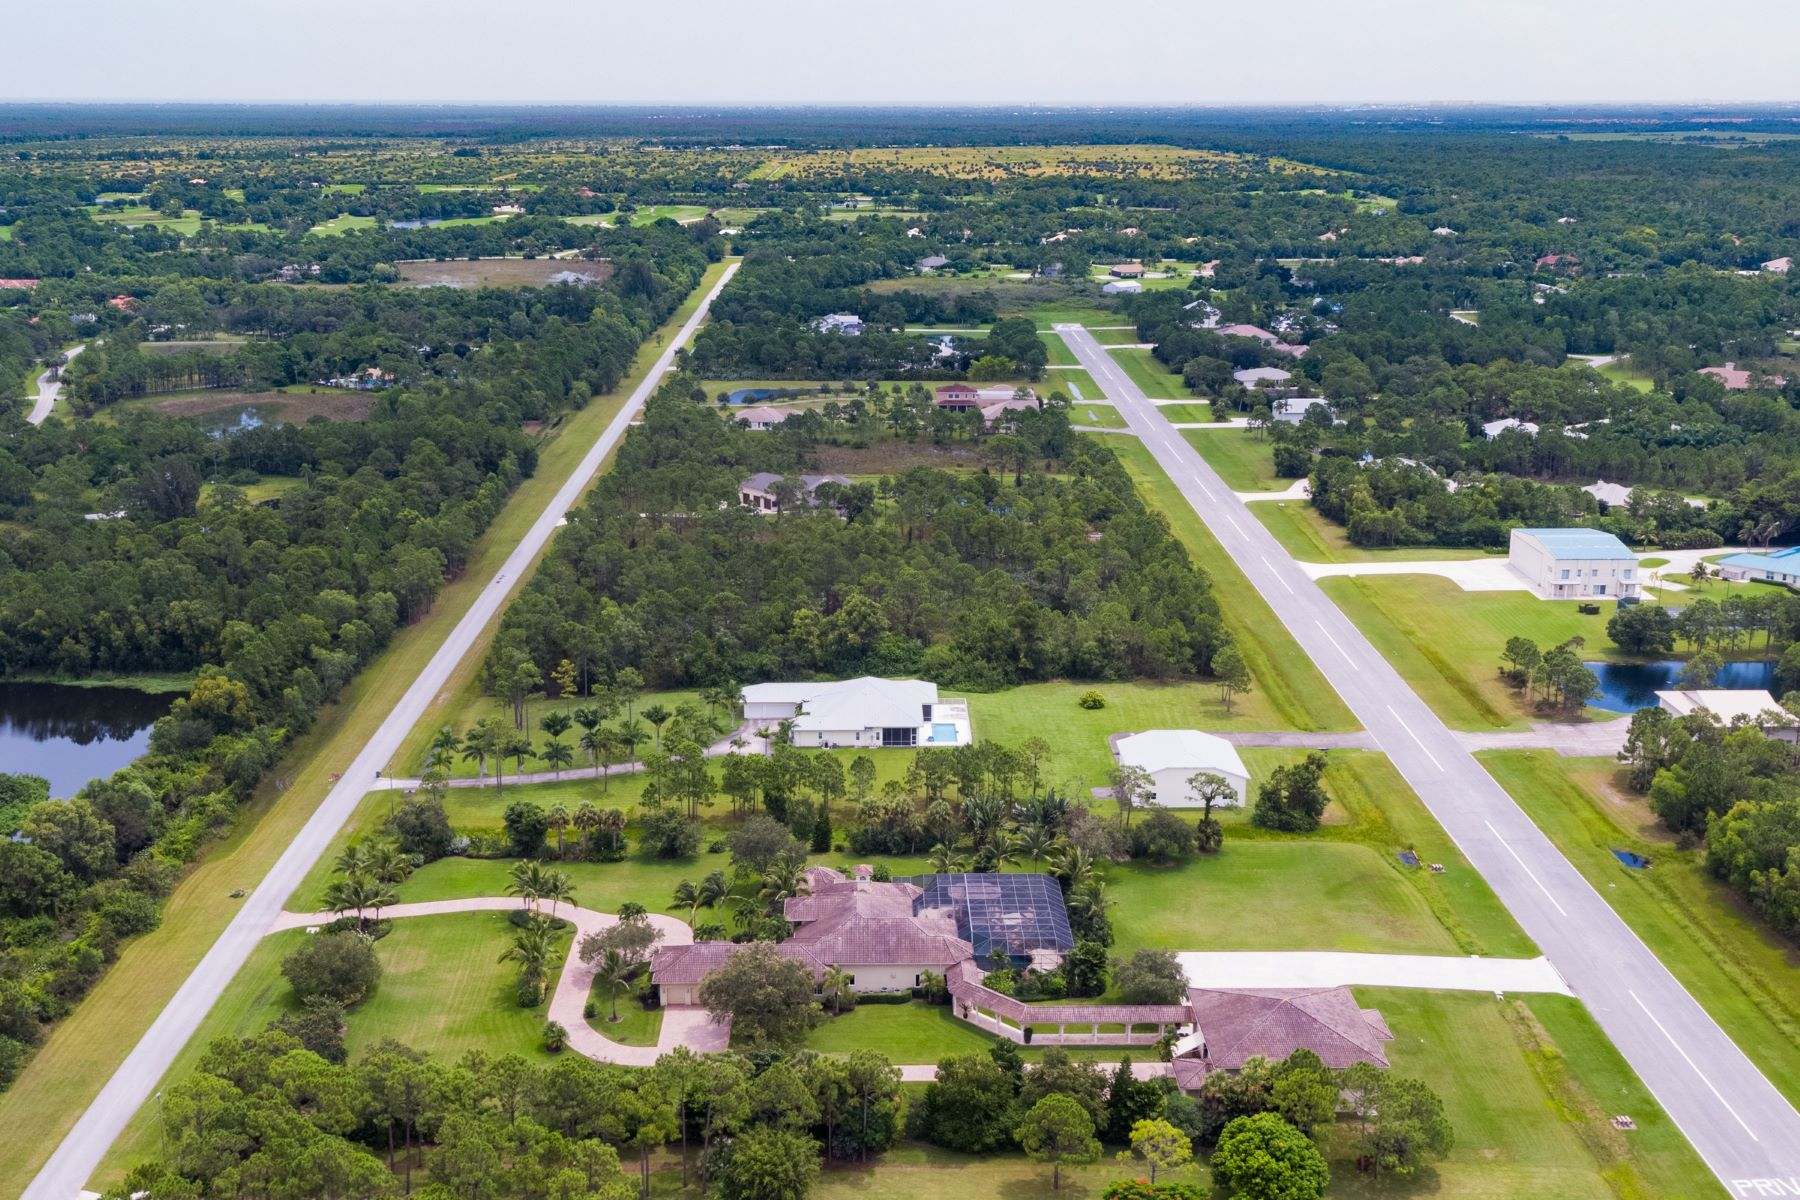 Single Family Home for Sale at 2560 SE Downwinds Road at Ranch Colony - Tailwinds 2560 SE Downwinds Road Jupiter, Florida 33478 United States